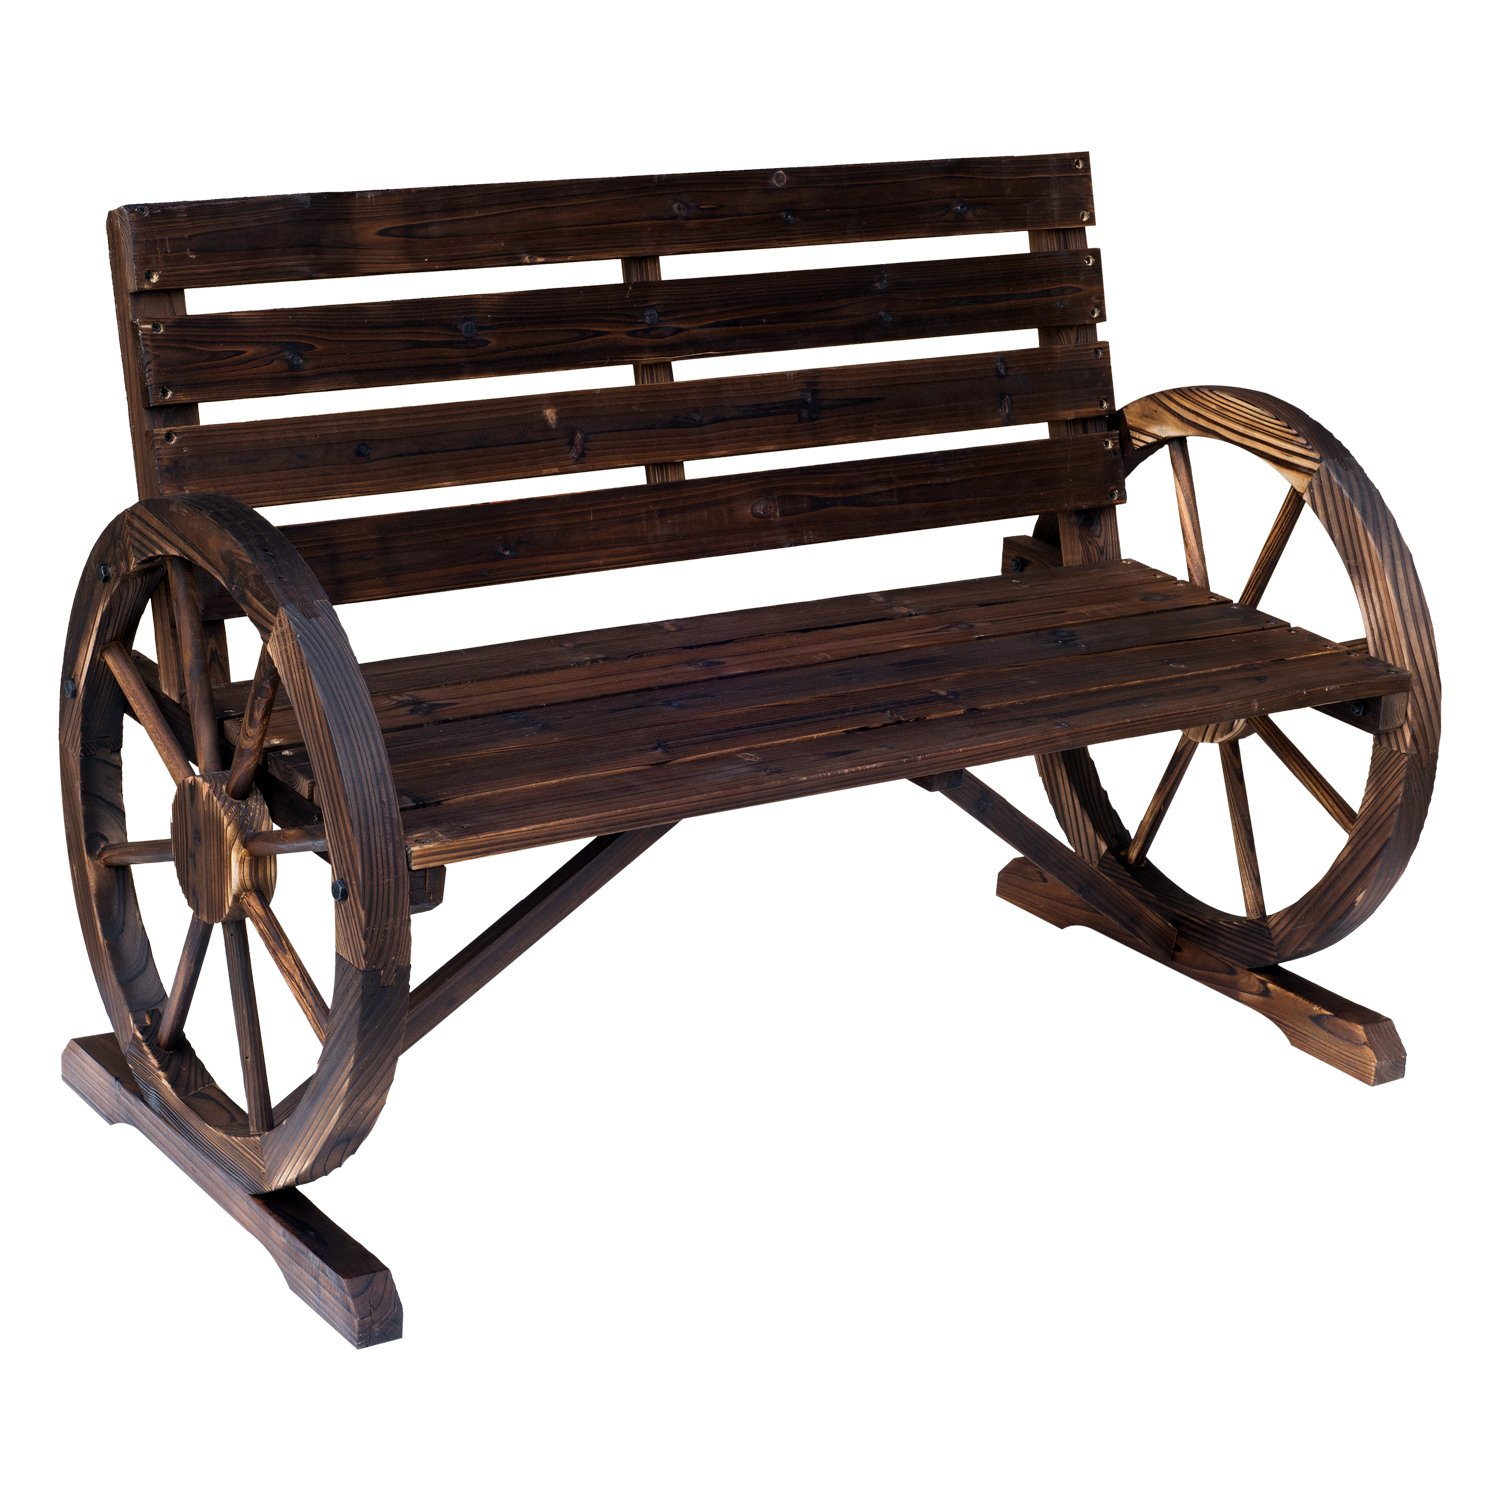 Outsunny Rustic Wooden Outdoor Patio Wagon Wheel Bench Seat